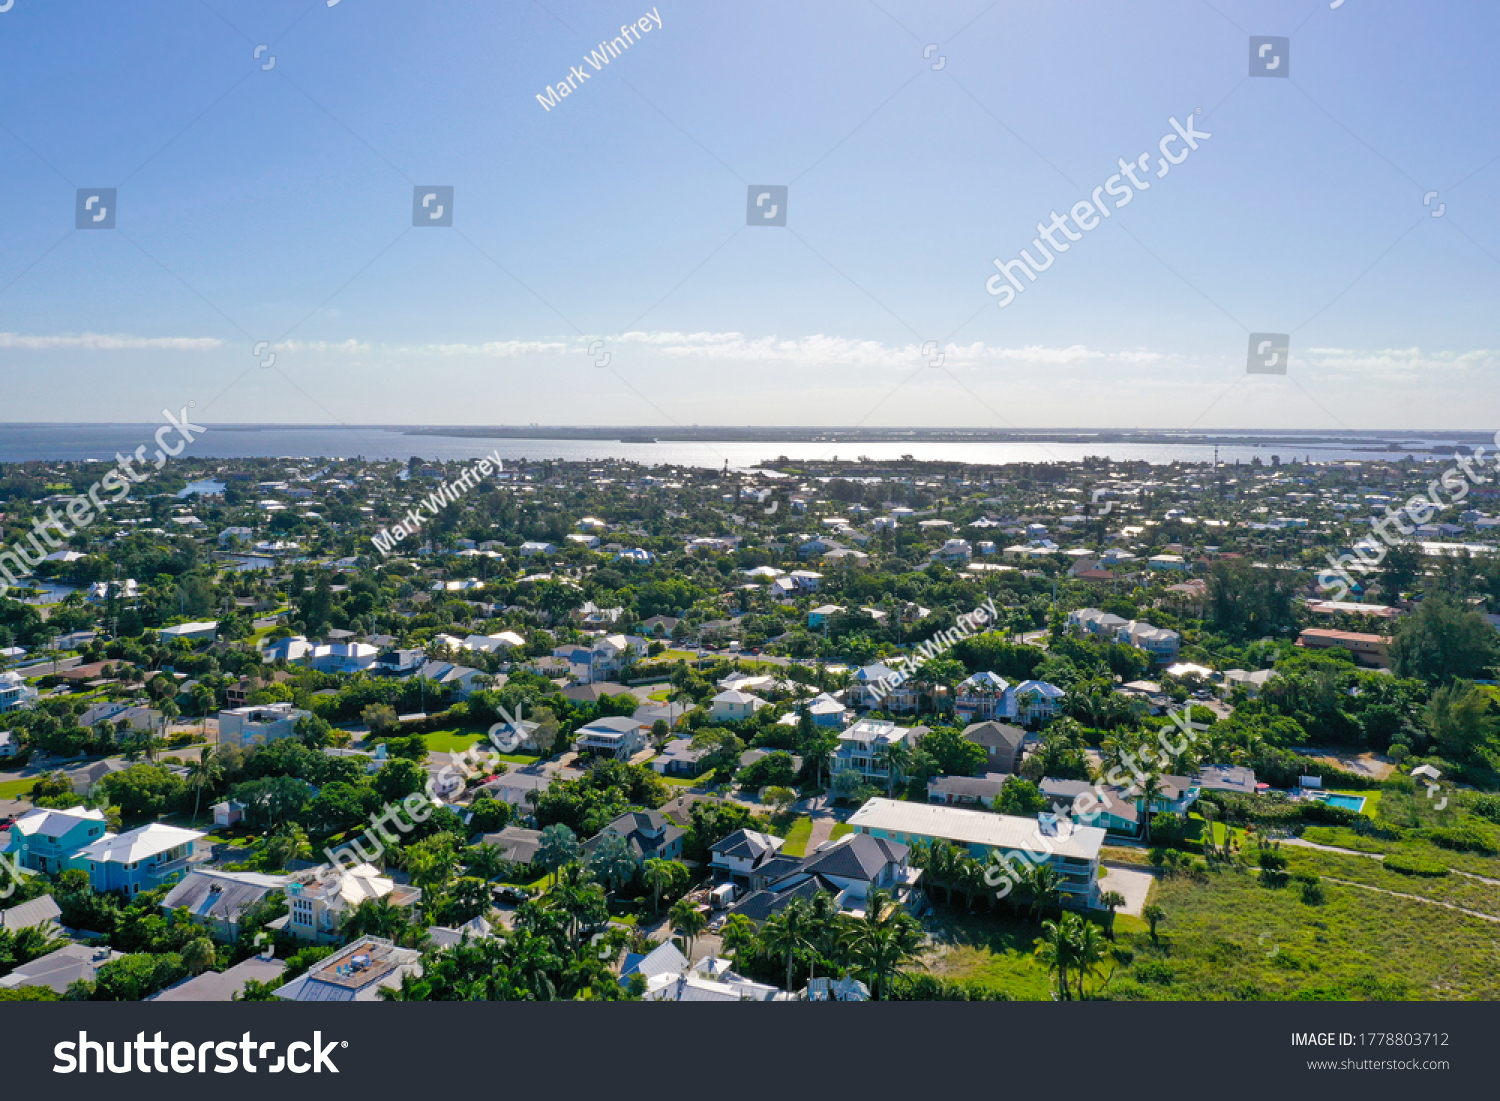 stock-photo-an-aerial-view-of-the-beauti